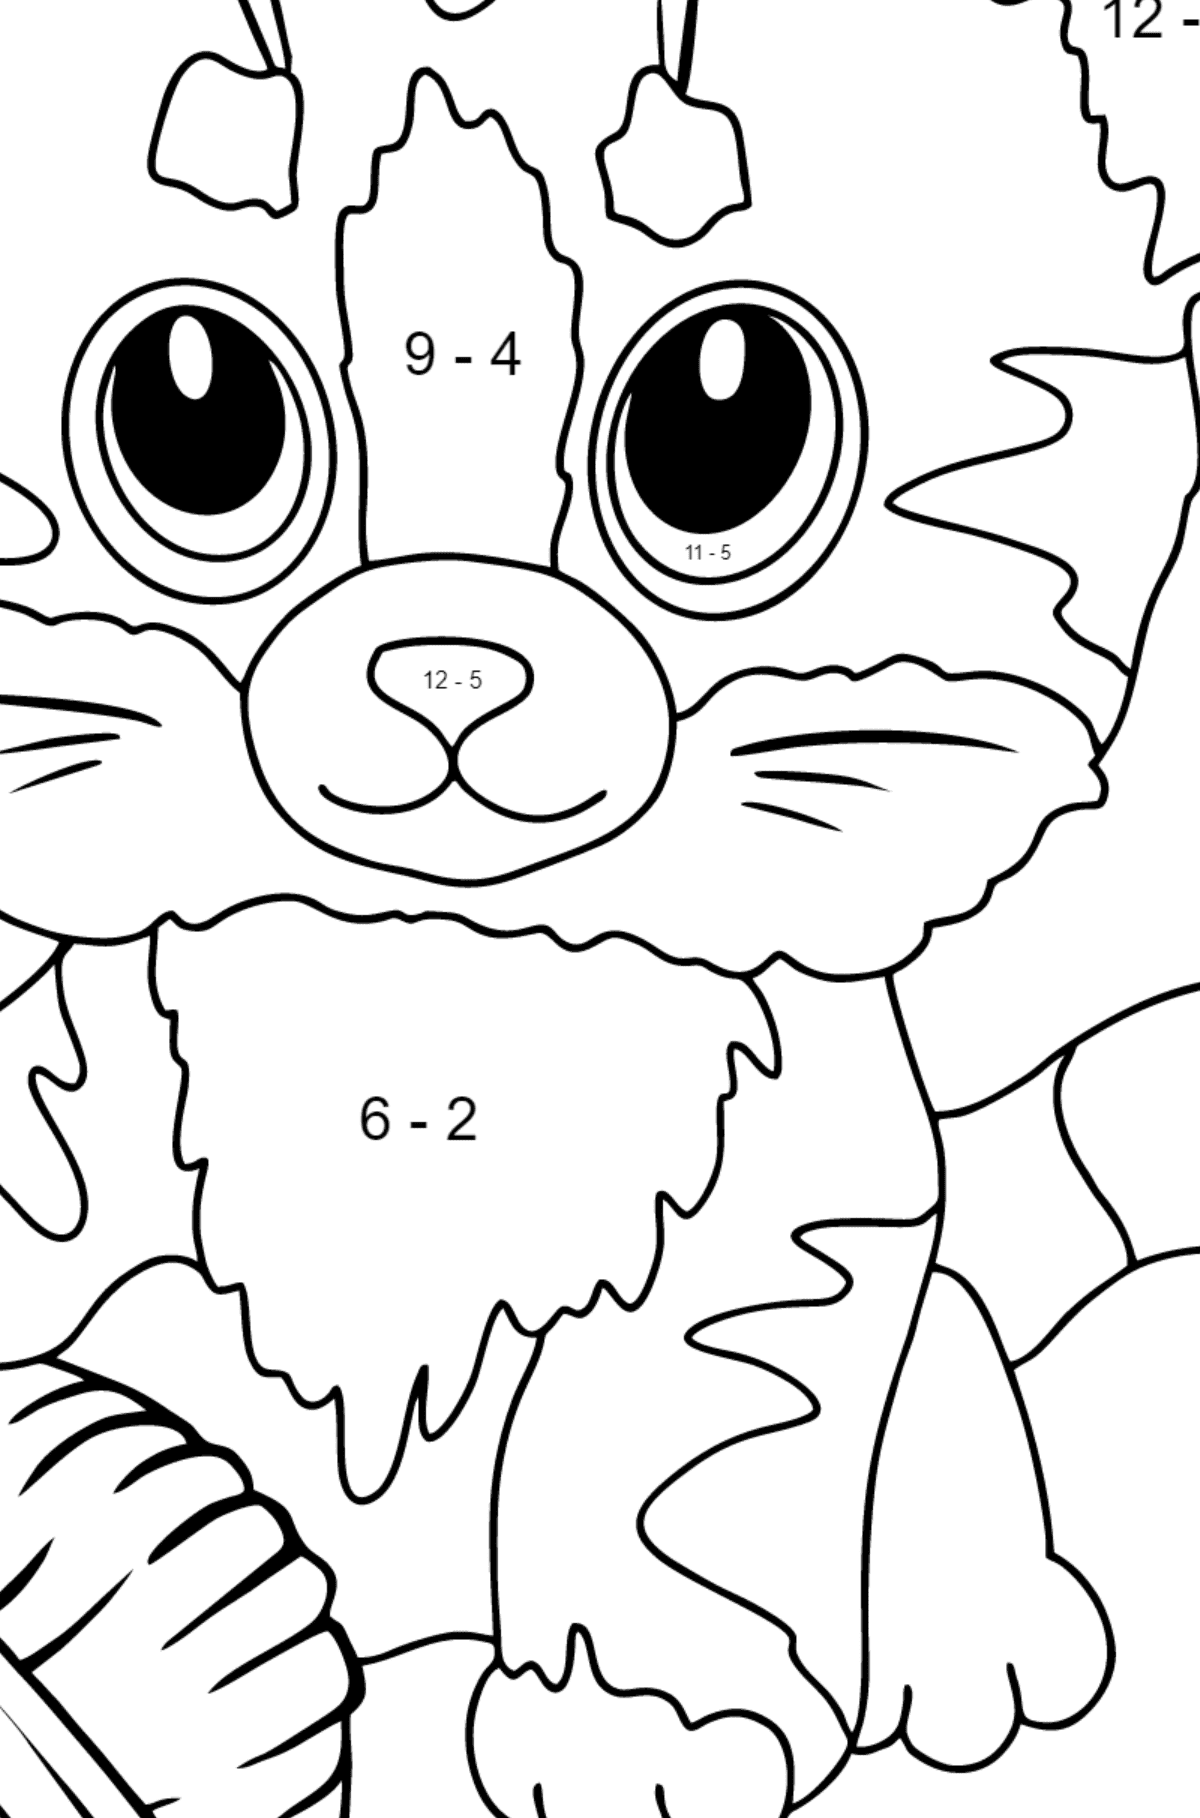 Coloring Page - a Kitten has Caught a Ball of Yarn - Math Coloring - Subtraction for Kids